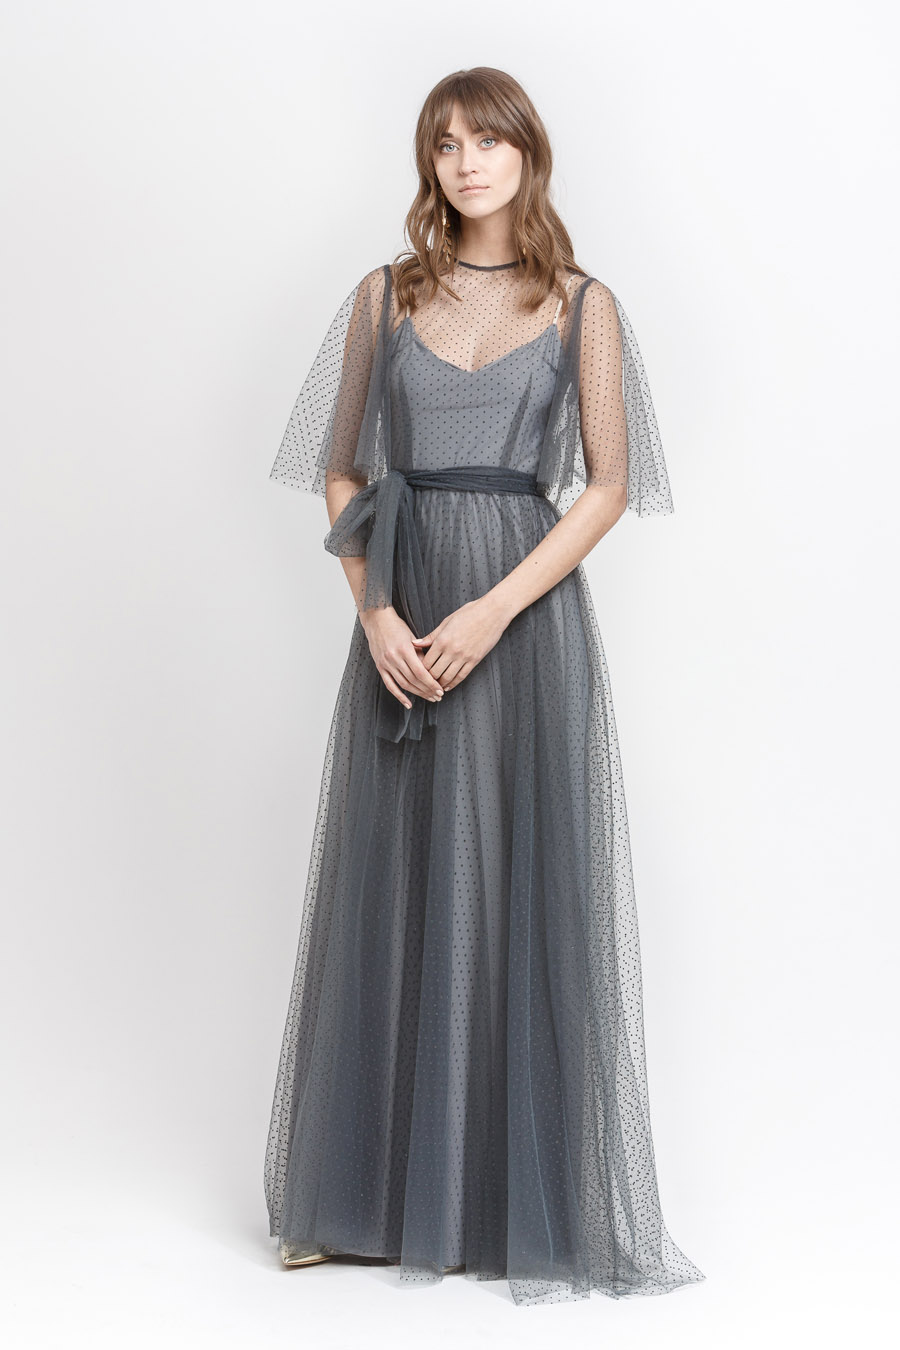 Bridesmaid ideas for 2019 grey coral unique unusual - Katya Katya London (6)